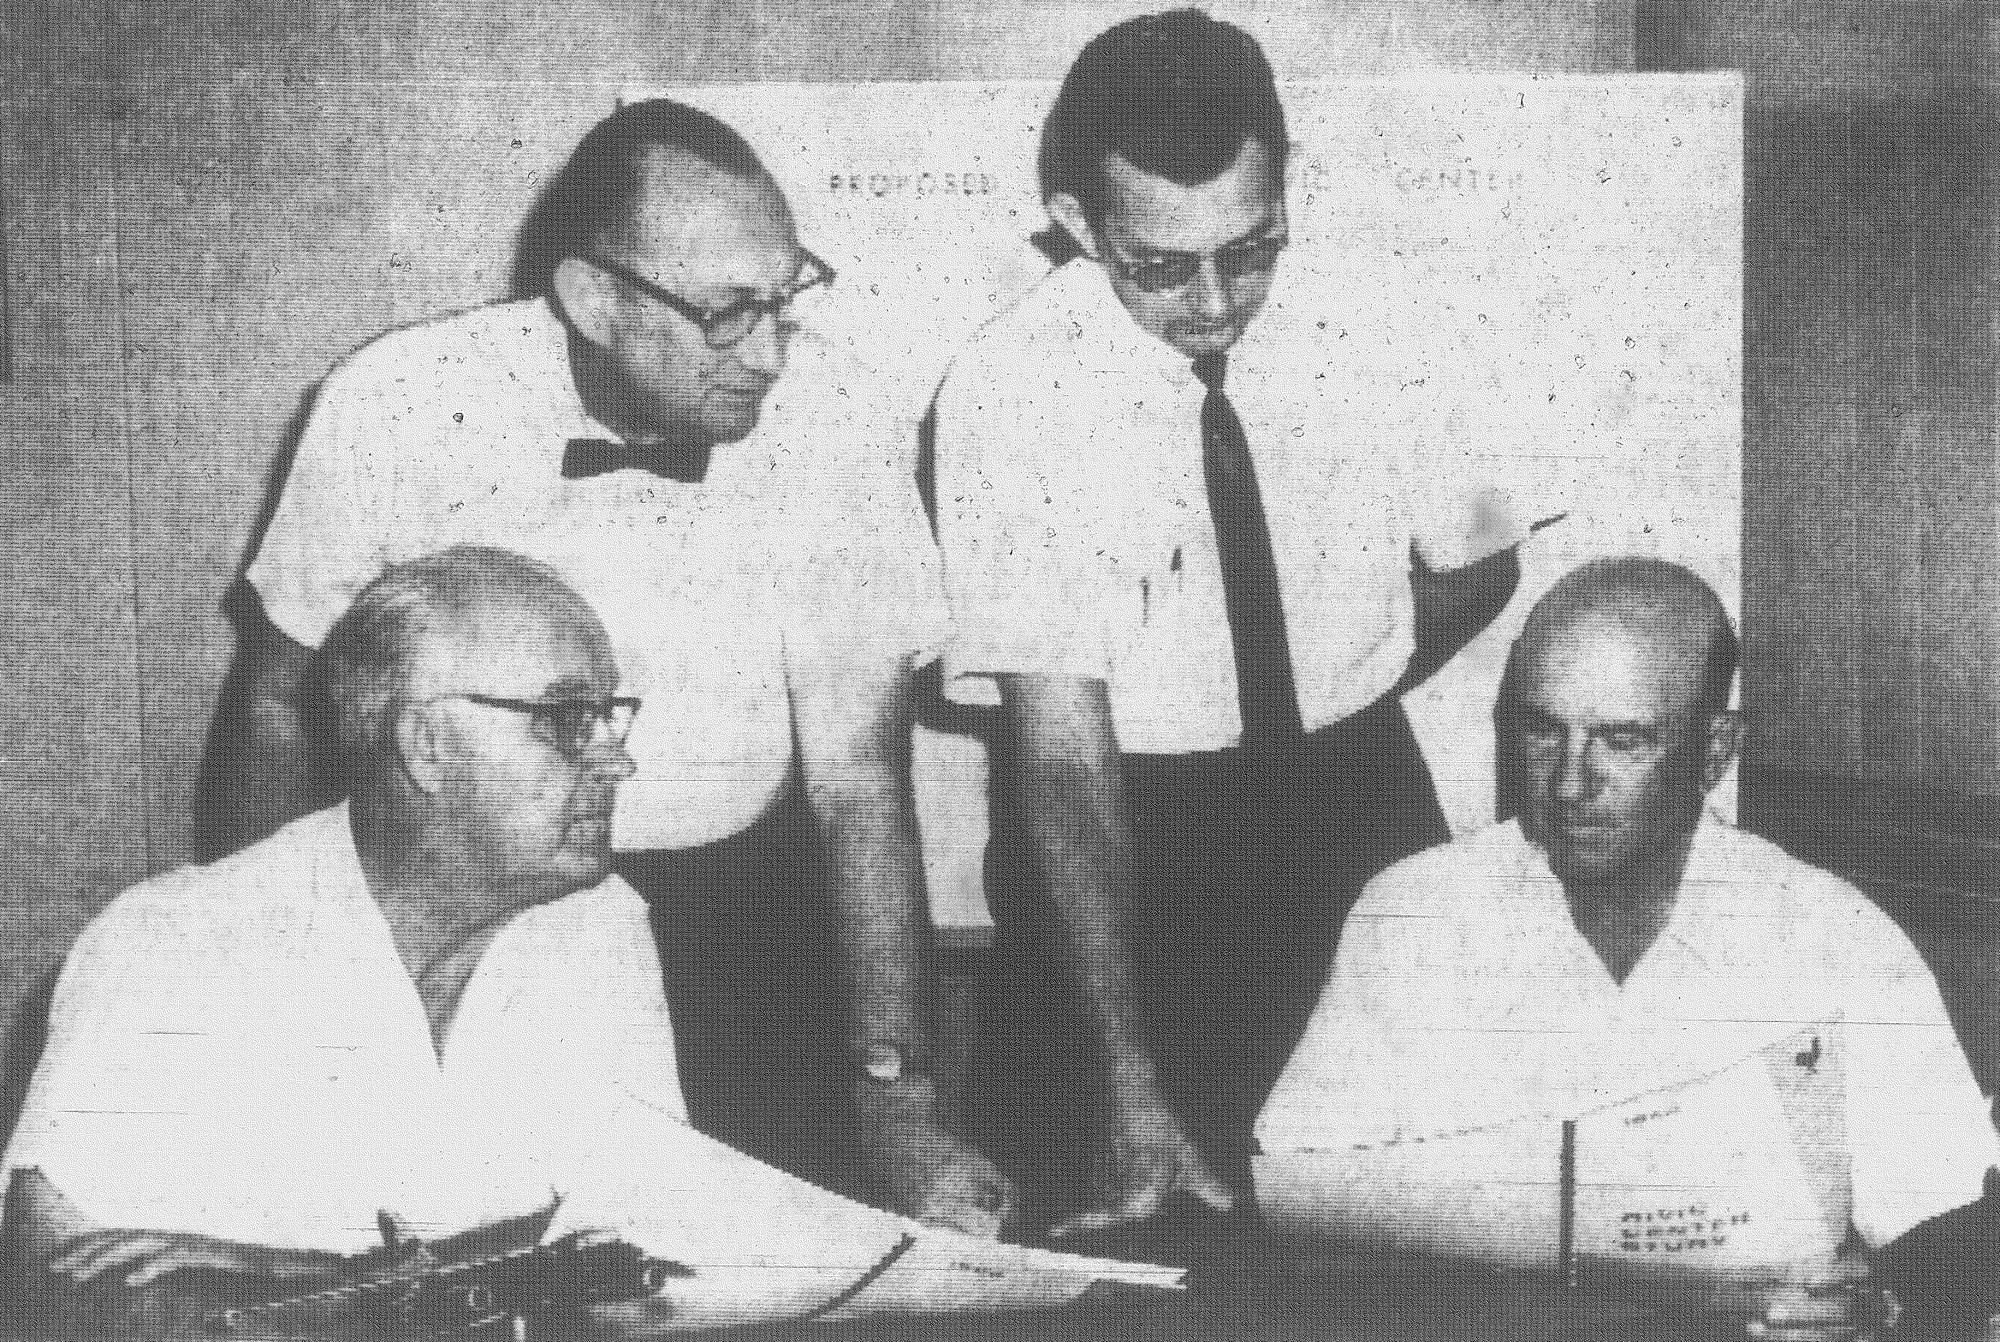 Civic Center study committee co-chairmen B.L. Williams and H.D. Osteen (left and right, seated) review their report before the joint meeting of the city and county planning bodies in 1964 at City Hall. The planning bodies adopted the study.